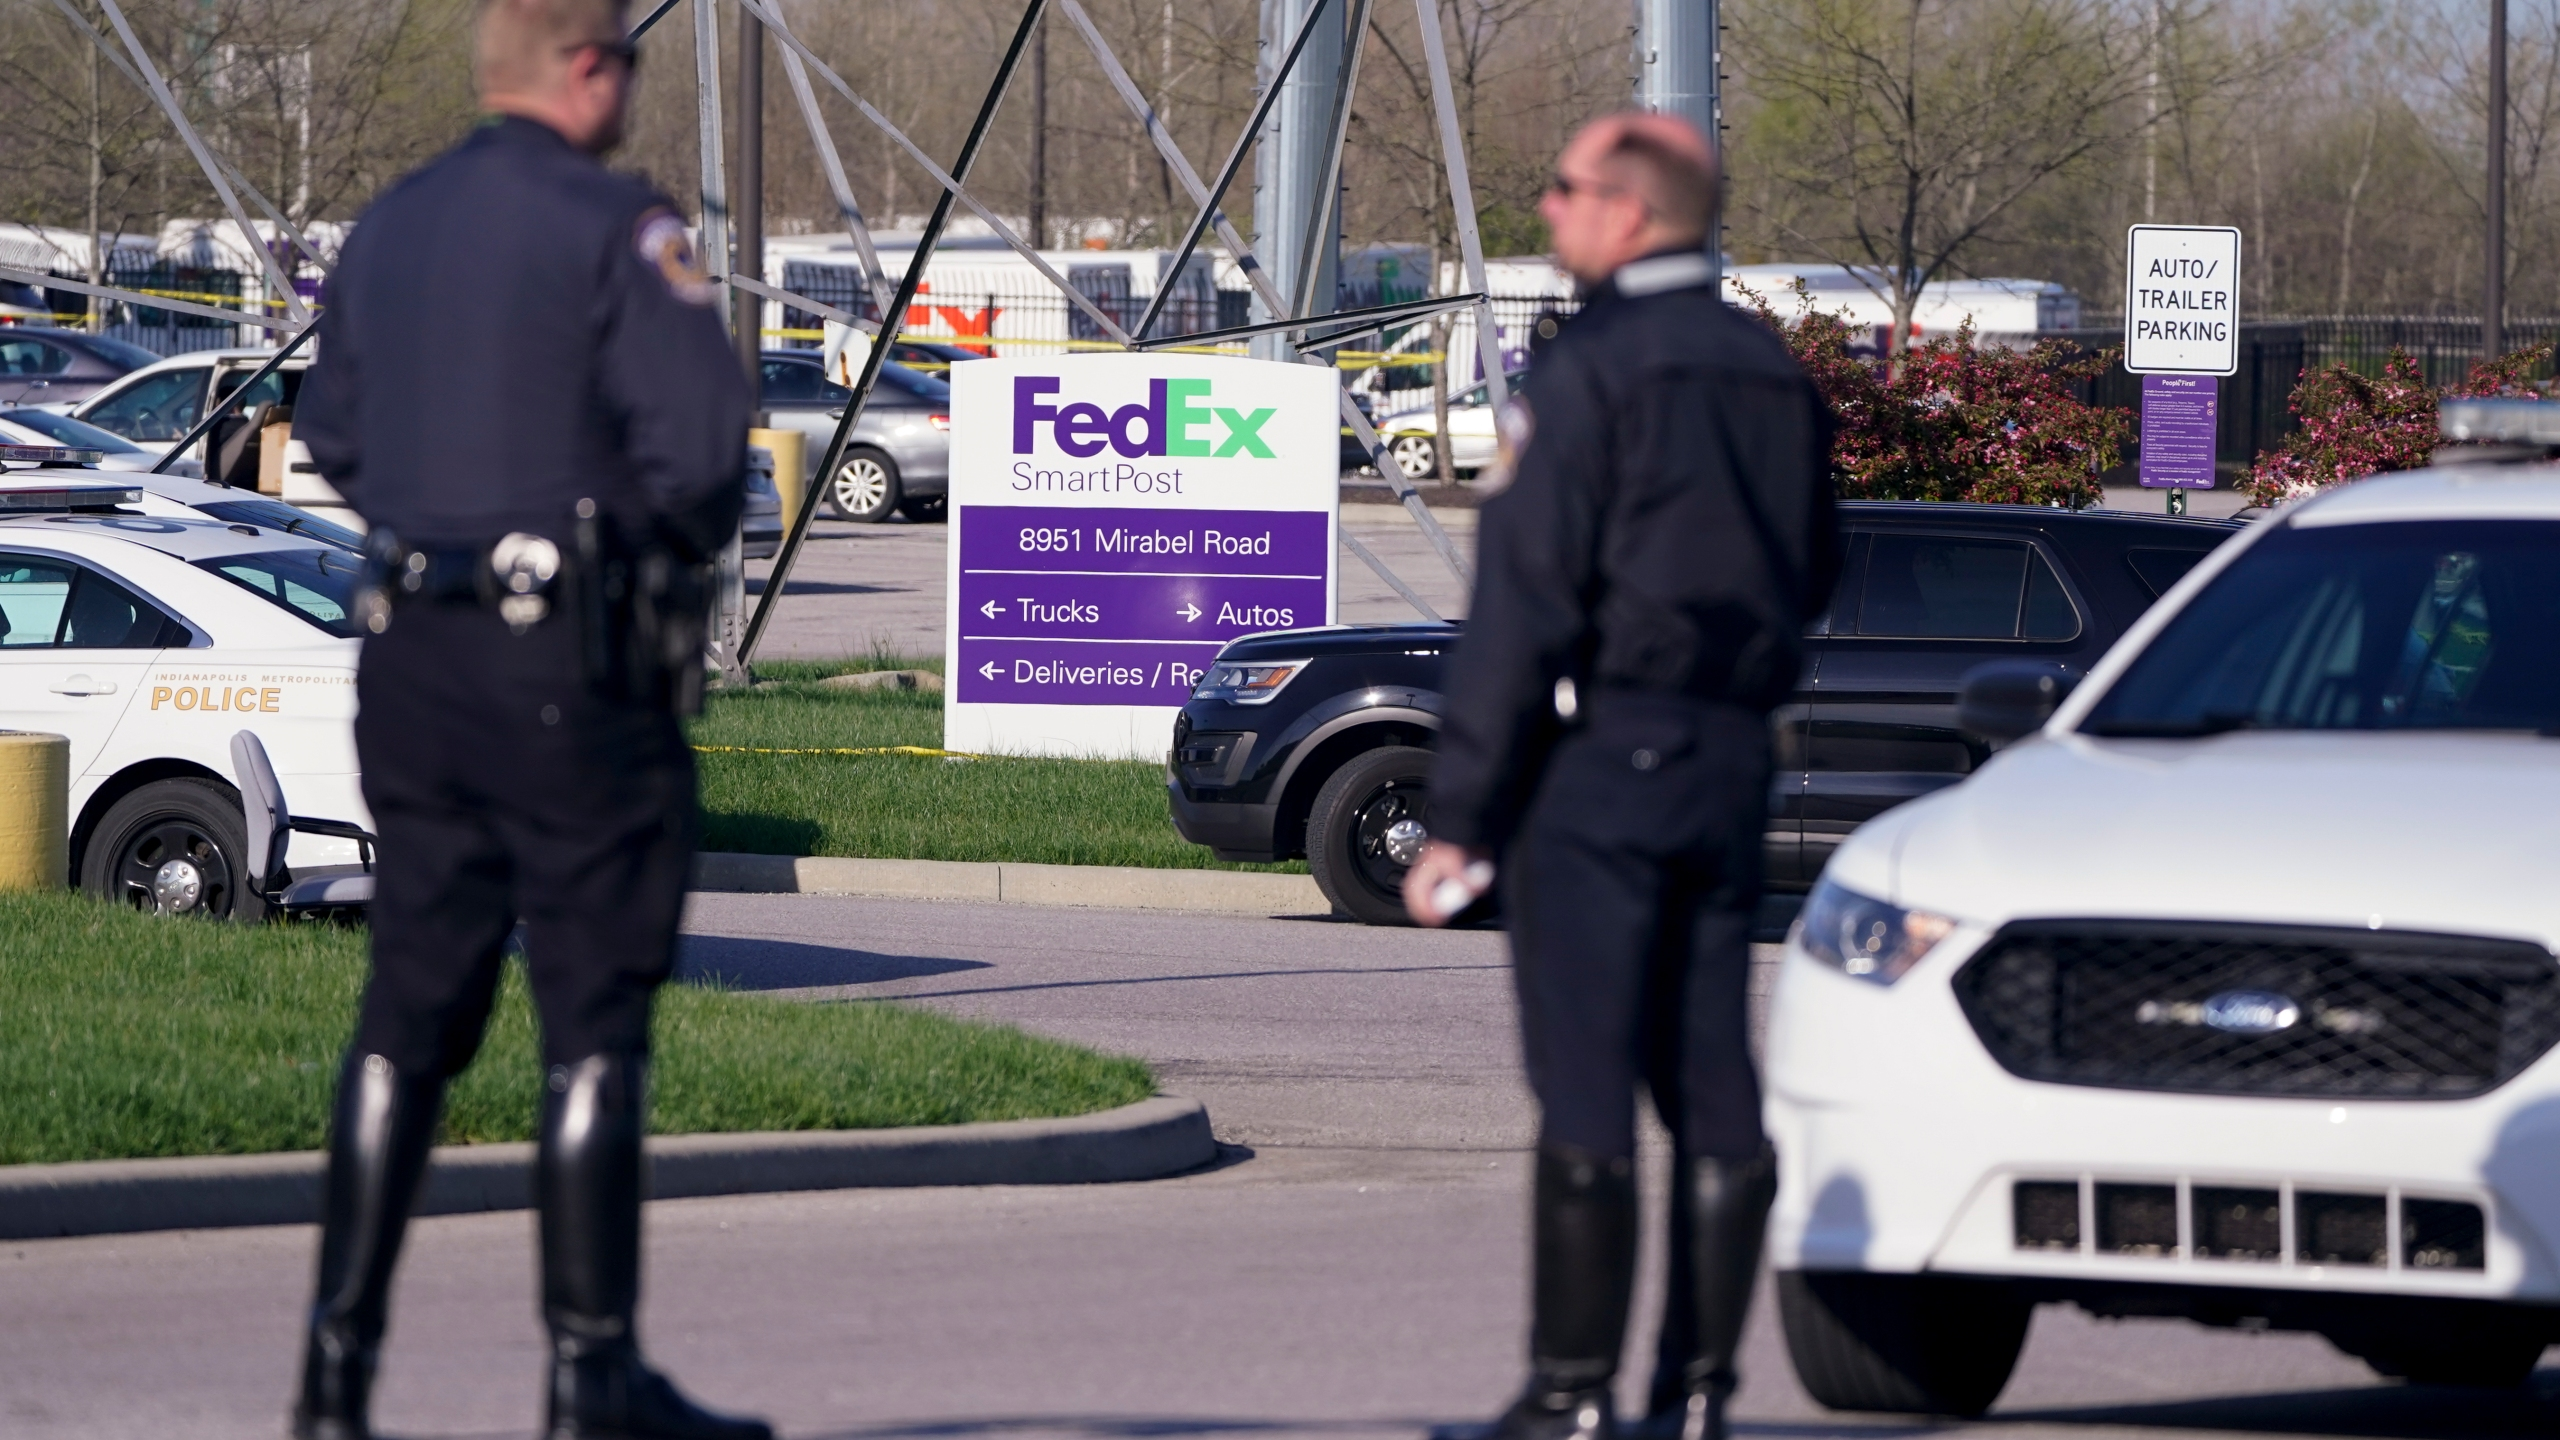 Assault rifles used in FedEx shooting were legally purchased